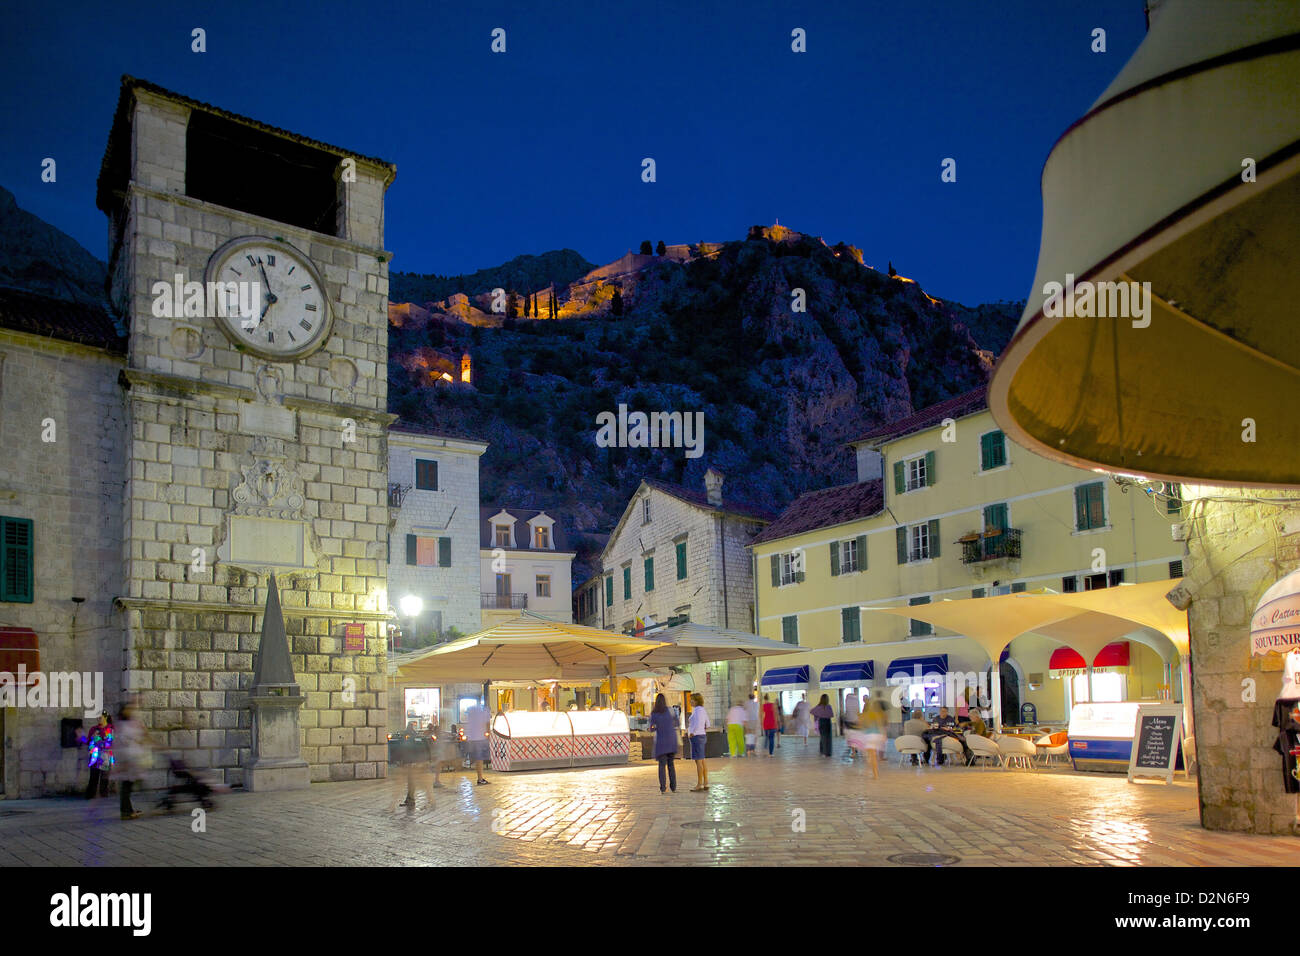 Old Town Clock Tower and Fort at dusk, Old Town, UNESCO World Heritage Site, Kotor, Montenegro, Europe - Stock Image